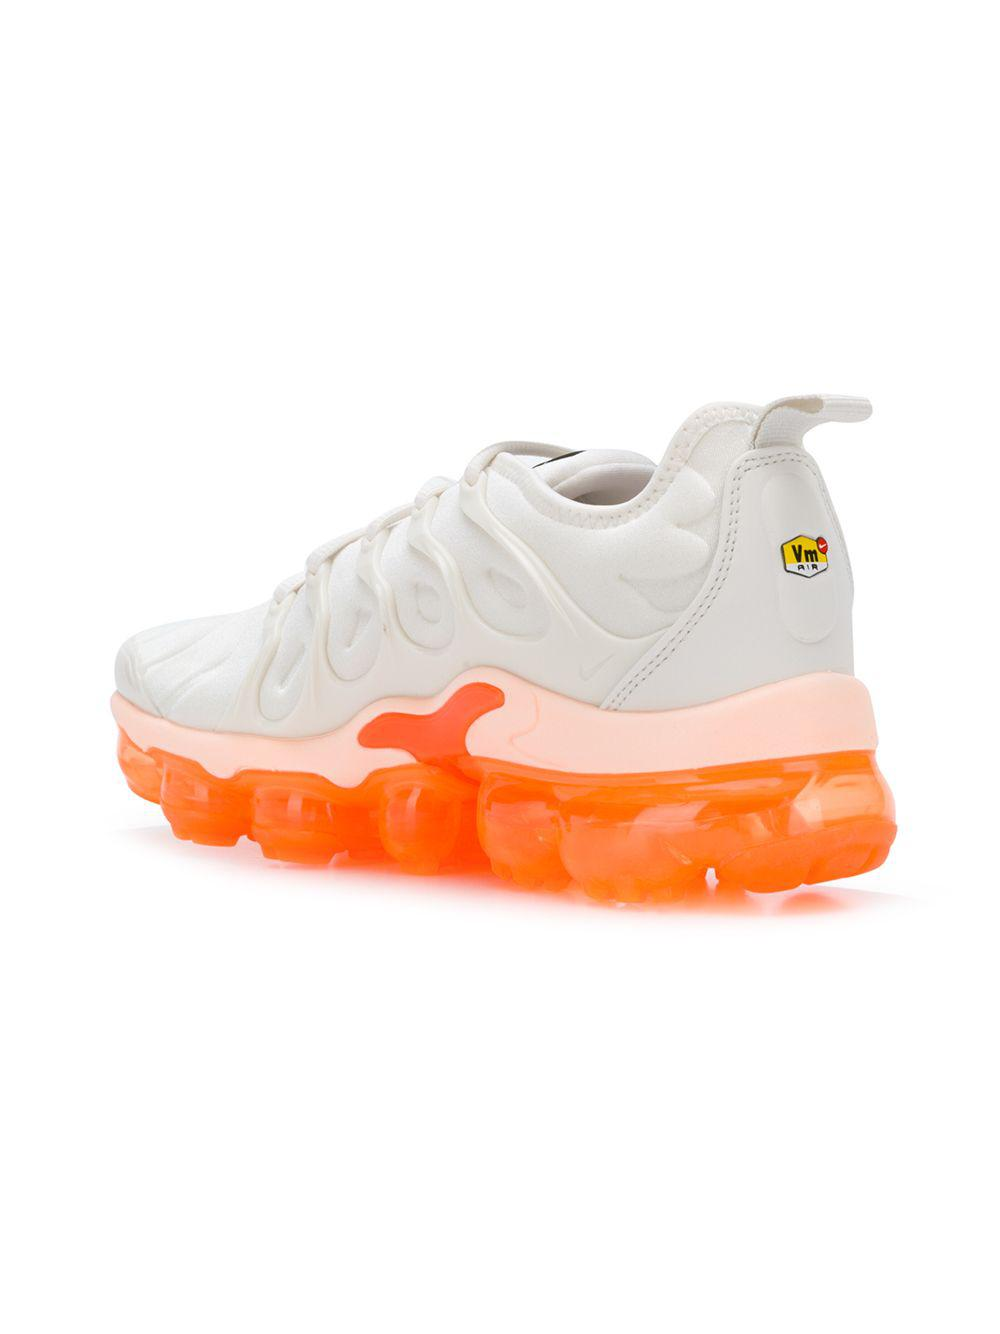 fdc2061c973 Nike Air Vapormax Plus Sneakers in White - Lyst